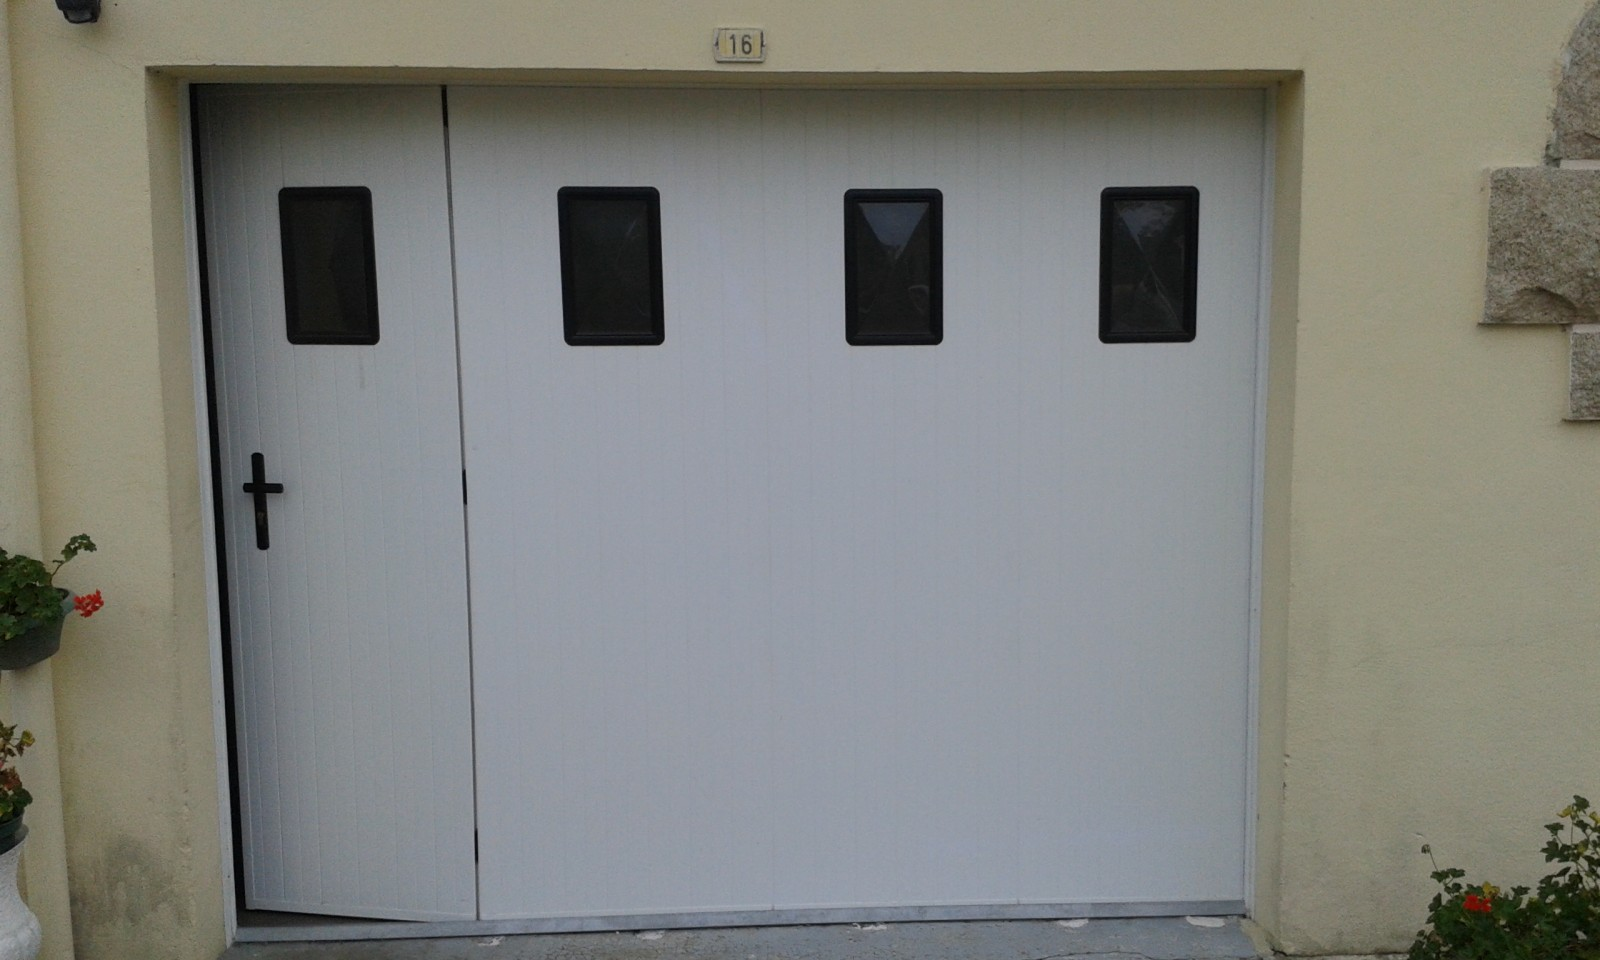 Porte de garage lat rale coulissante pvc manuelle for Porte de garage coulissante motorisee